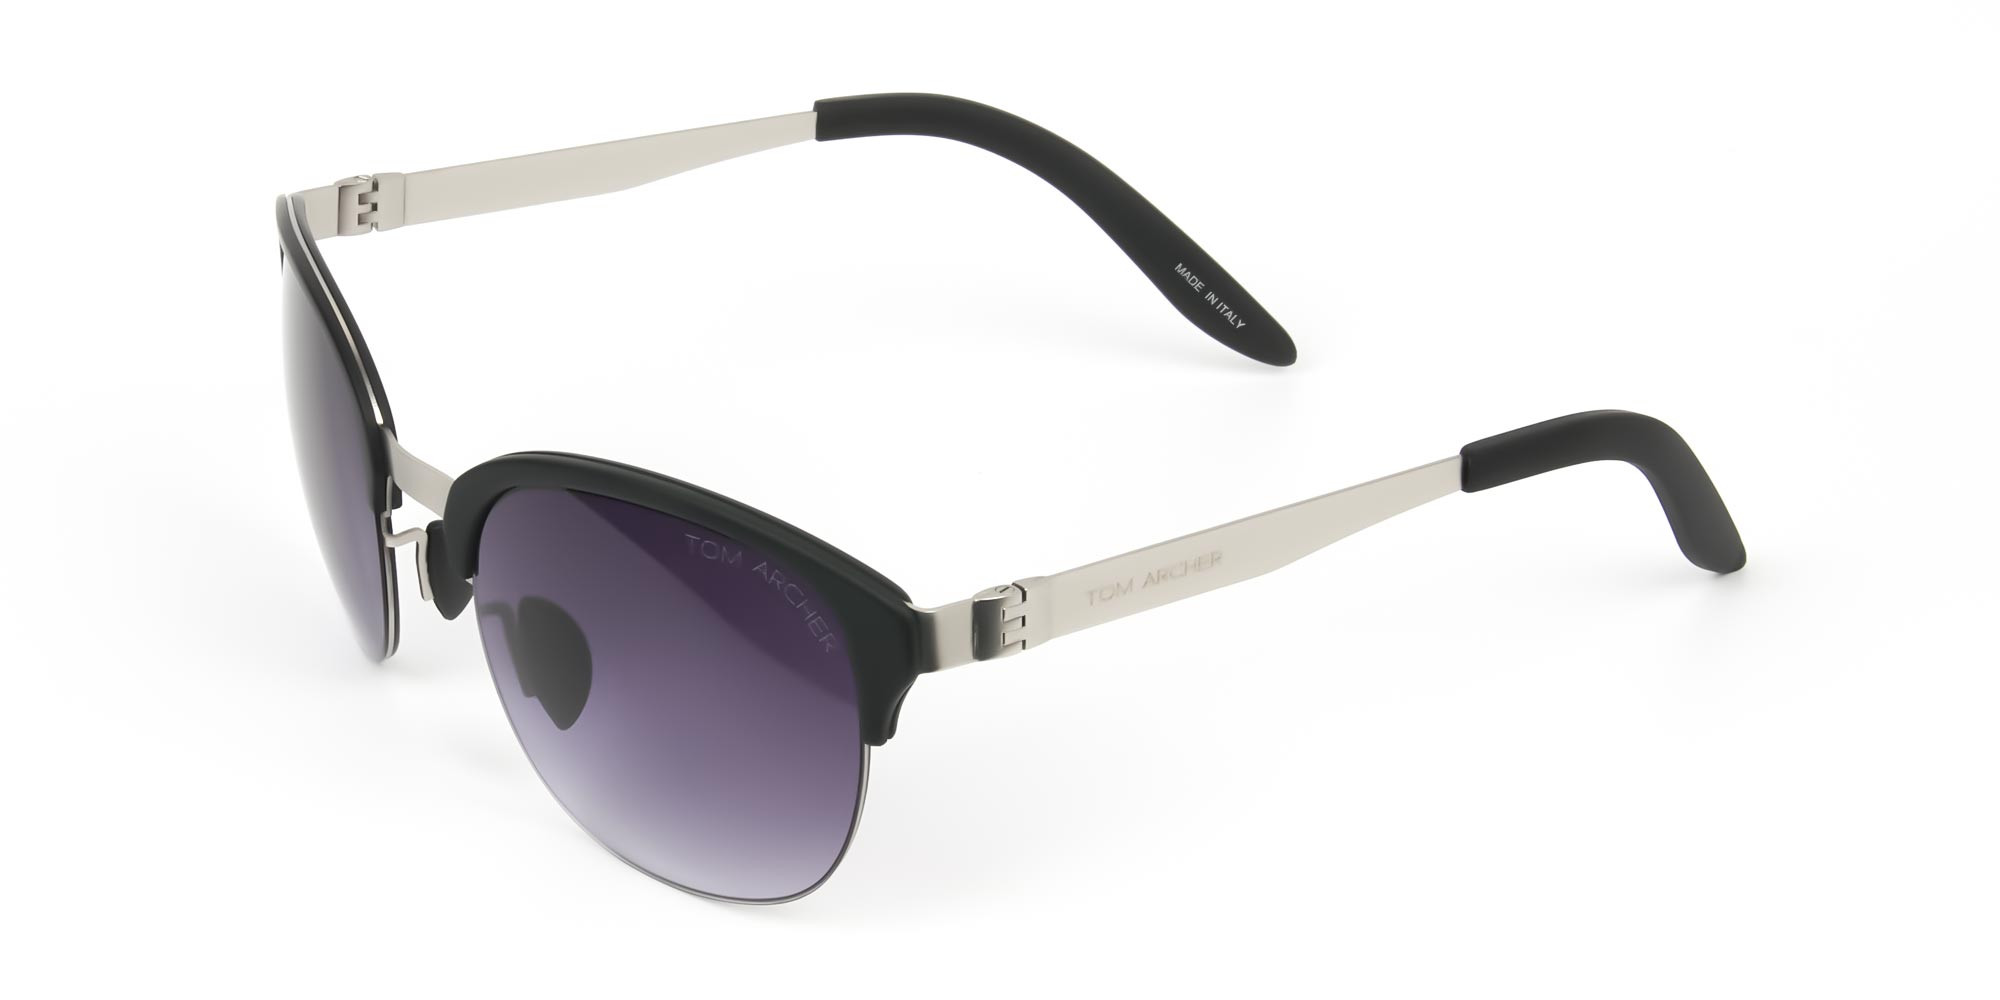 Stylish-Dark-Grey-Round-wayfarer-Sunglasses-Frames-3